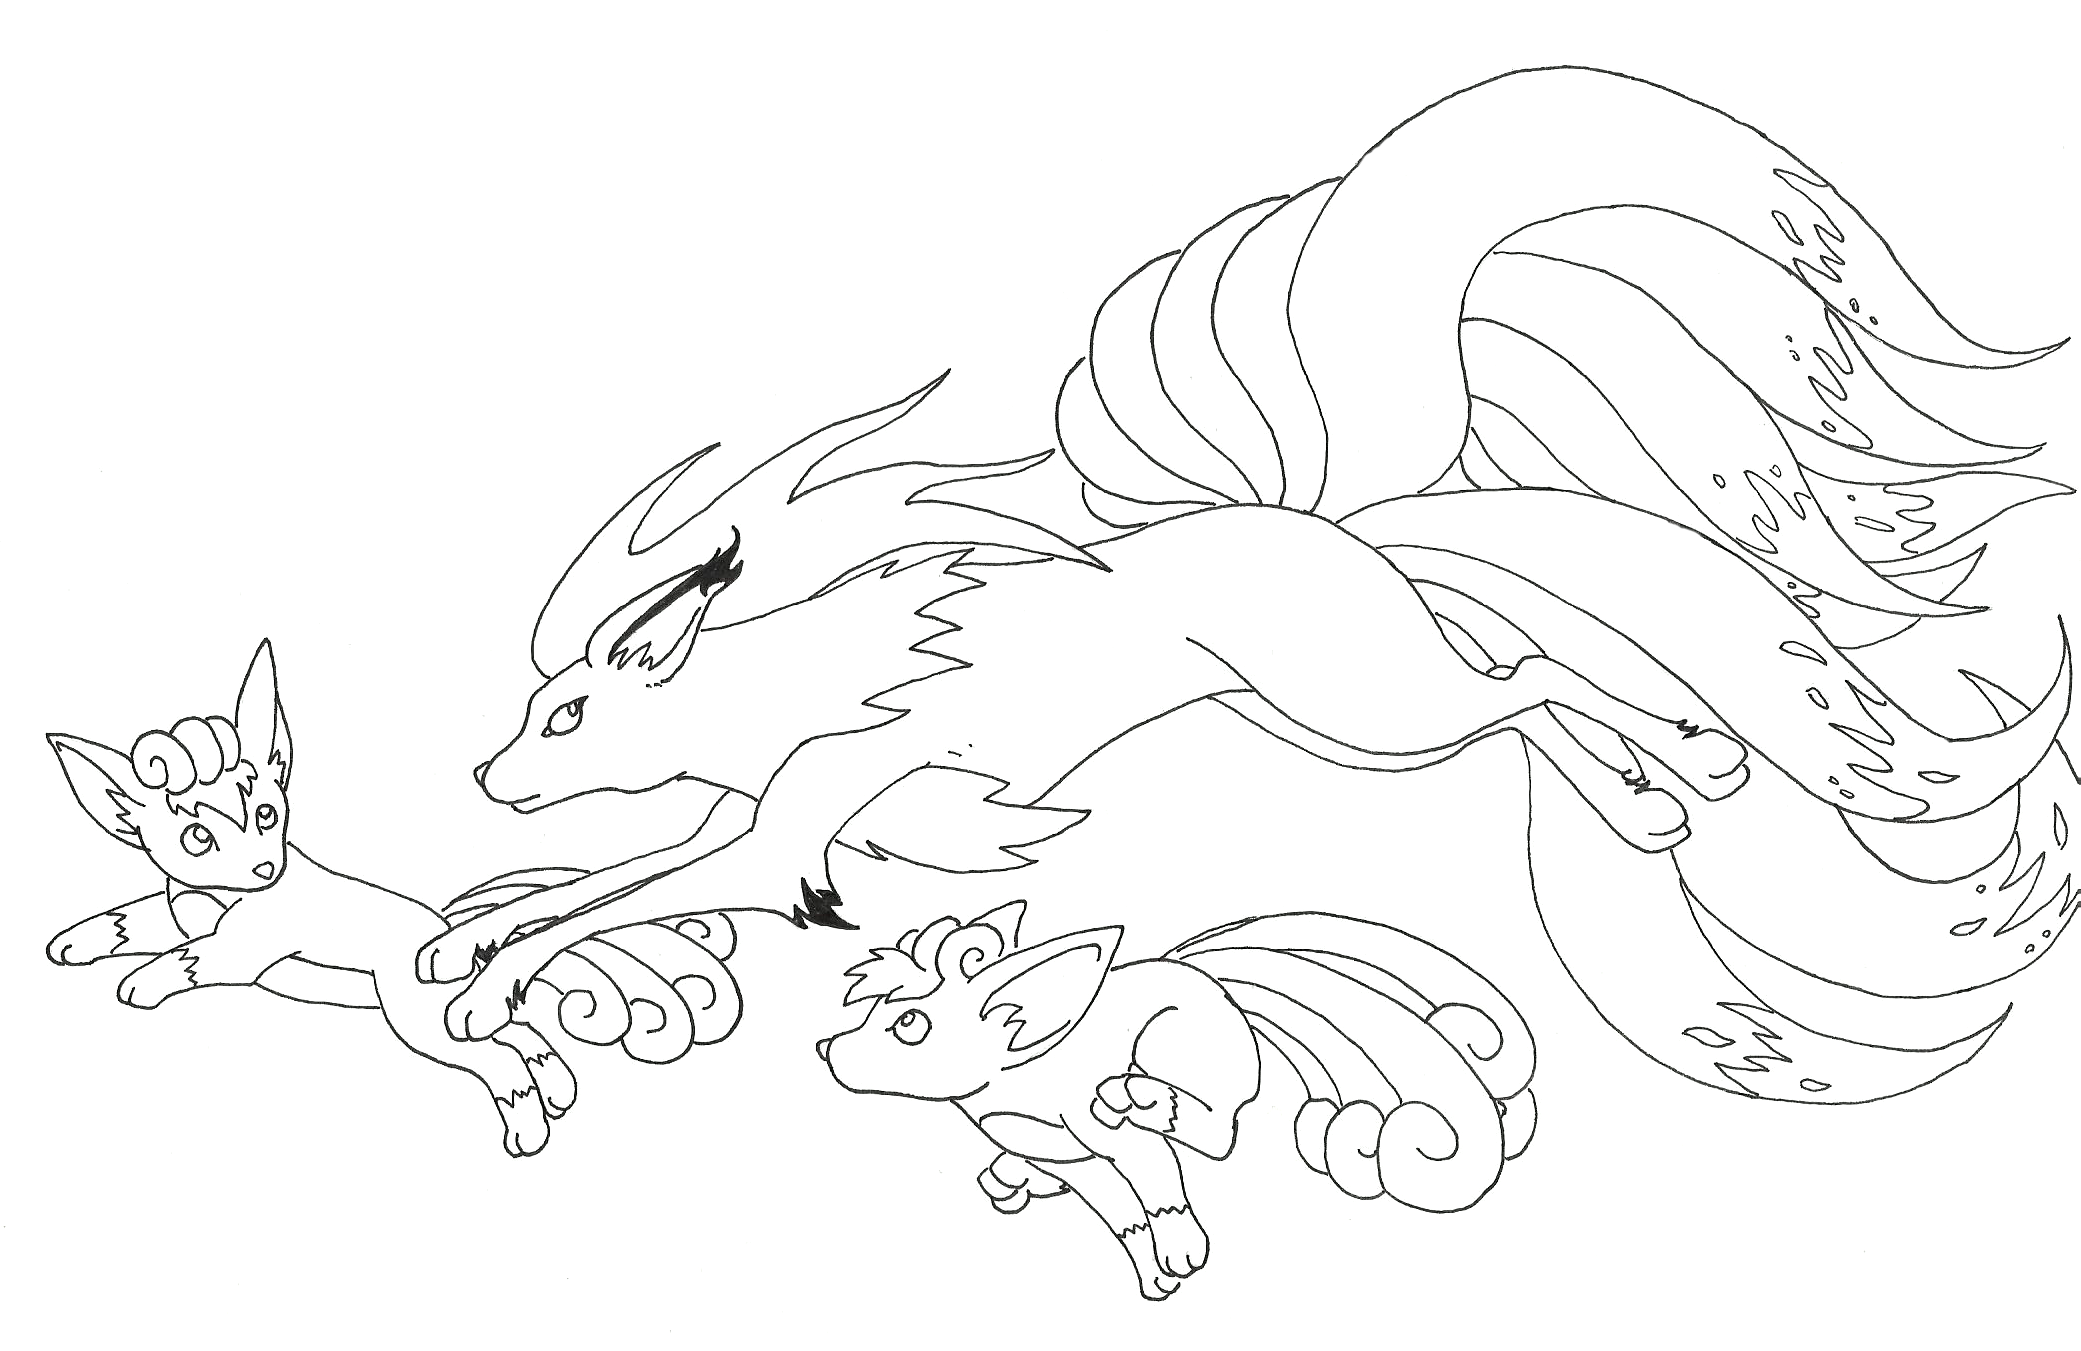 Vulpix Coloring Pages Download And Print For Free Vulpix Coloring Pages